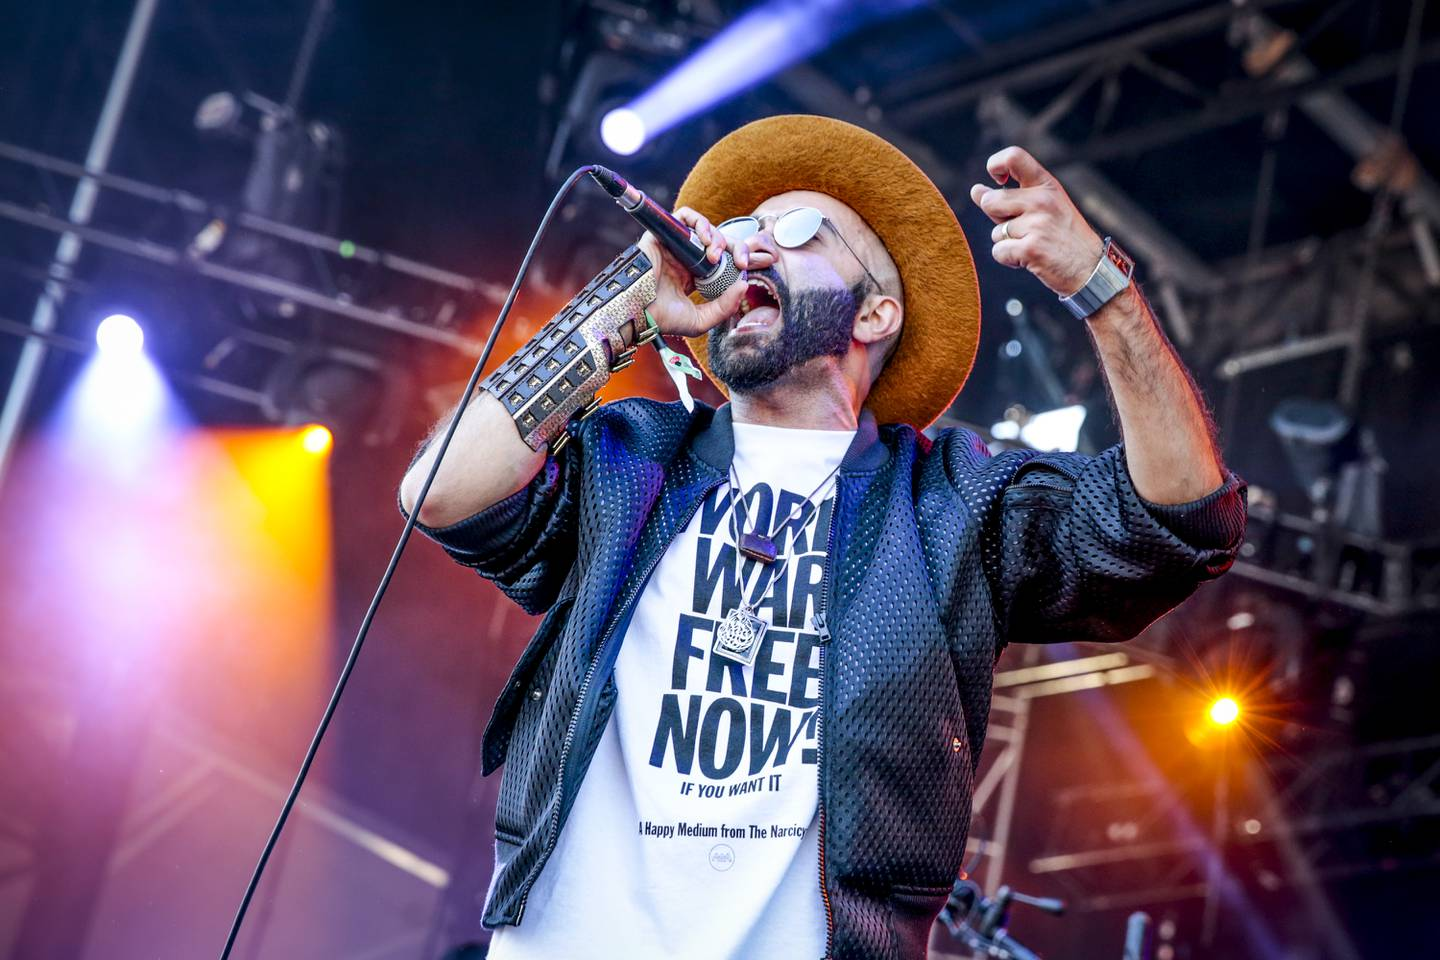 """MONTREAL, QC - AUGUST 01:  Narcy """"The Narcicyst"""" performs on Day 2 of the Osheaga Music and Art Festival on August 1, 2015 in Montreal, Canada.  (Photo by Mark Horton/WireImage) *** Local Caption ***  al05ju-music-narcicyst.jpg"""